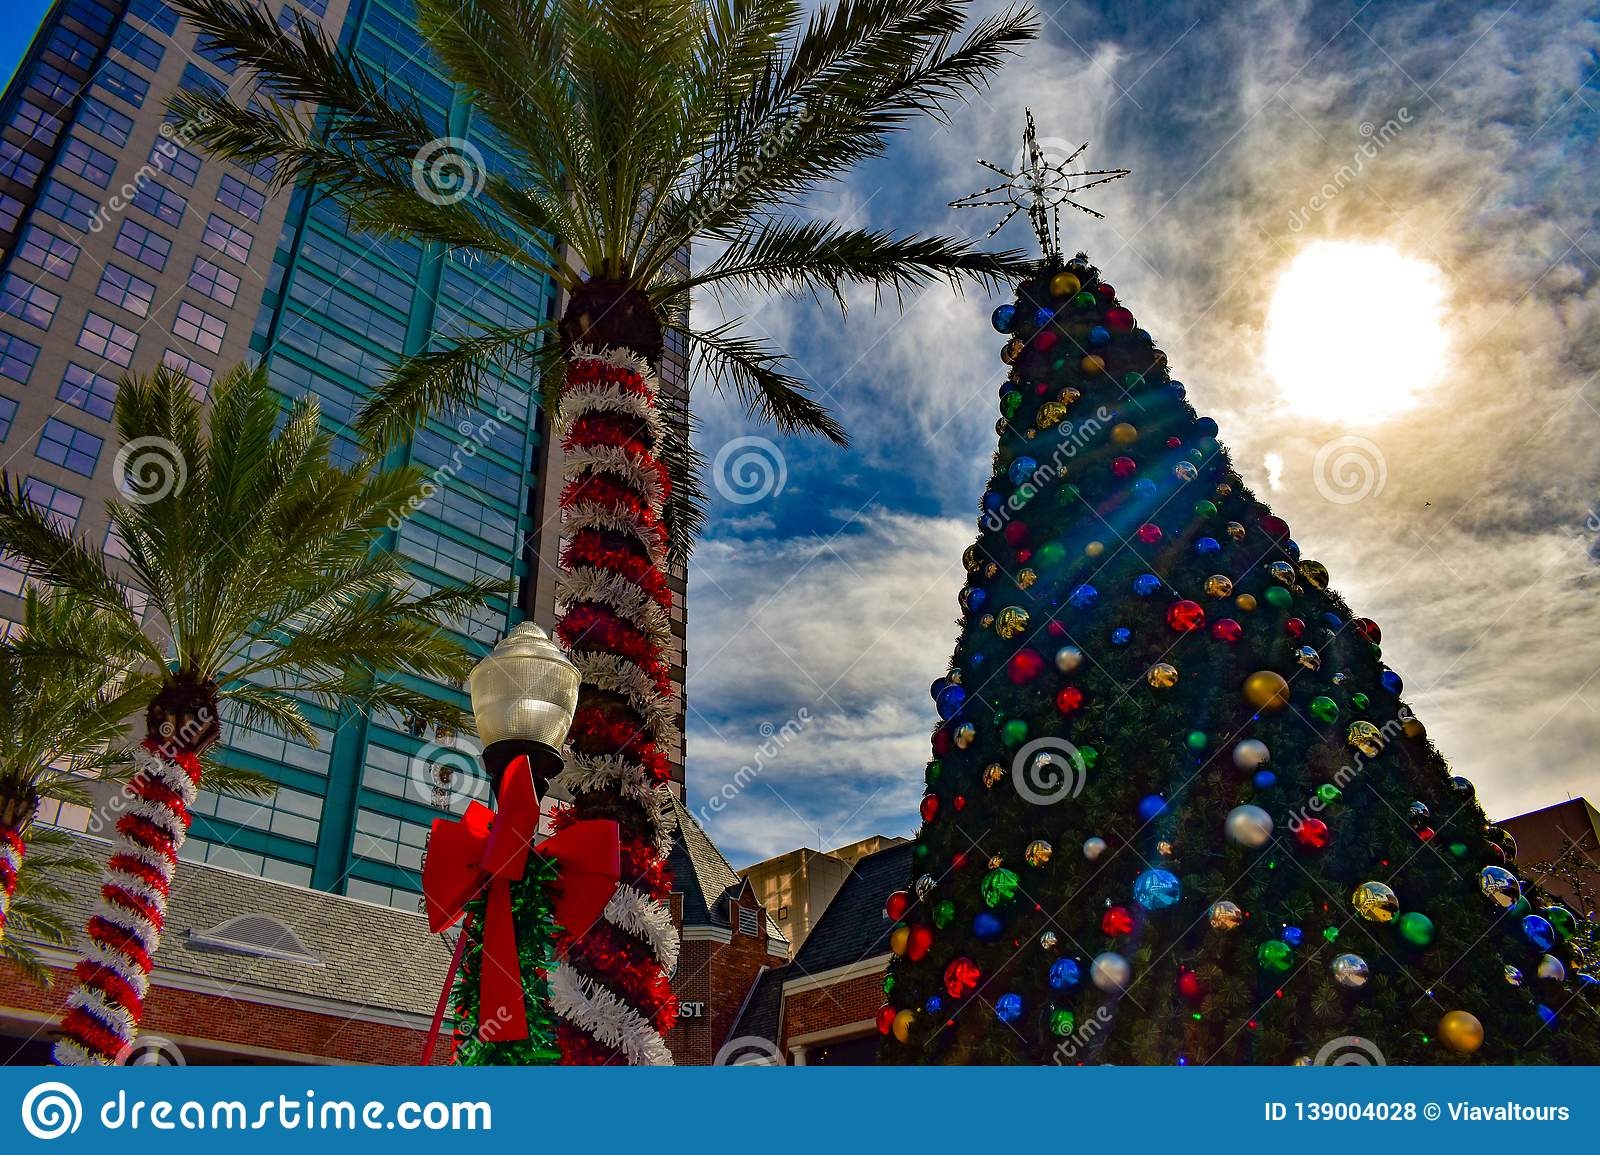 Palm Trees Decorated For Christmas And Christmas Tree On Sunset